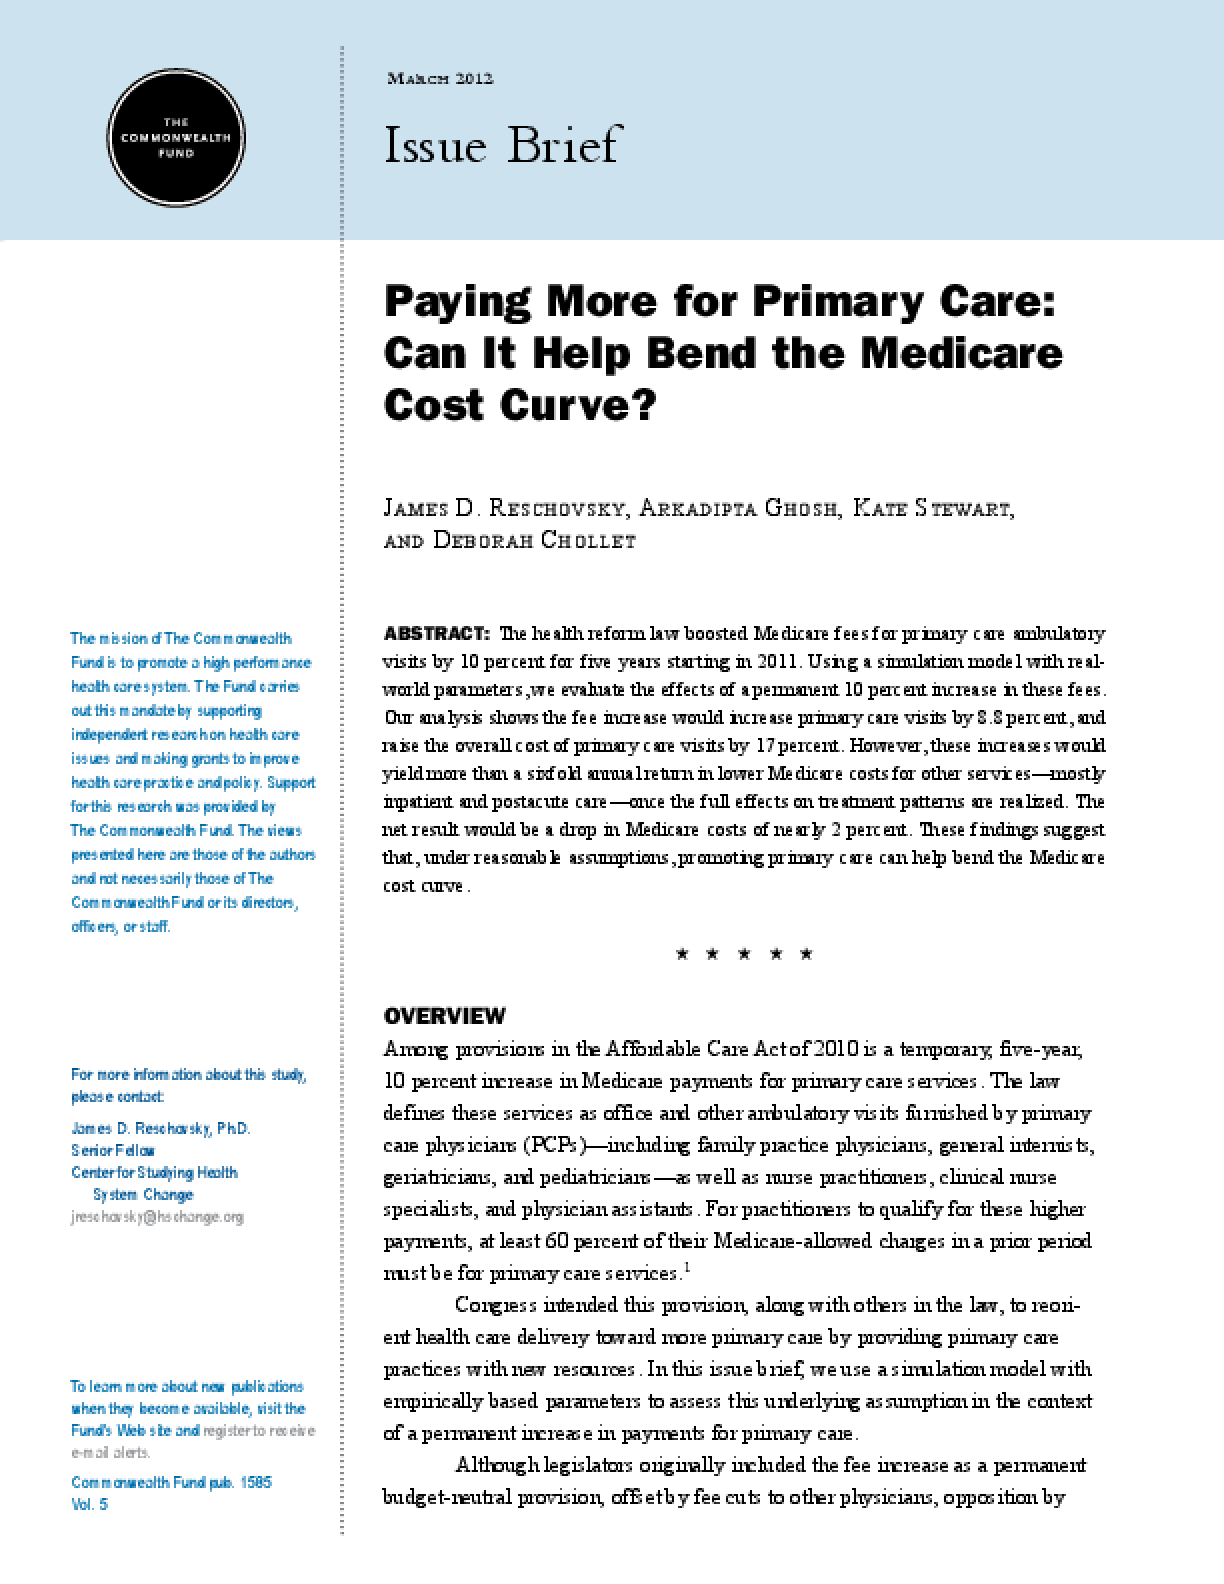 Paying More for Primary Care: Can It Help Bend the Medicare Cost Curve?